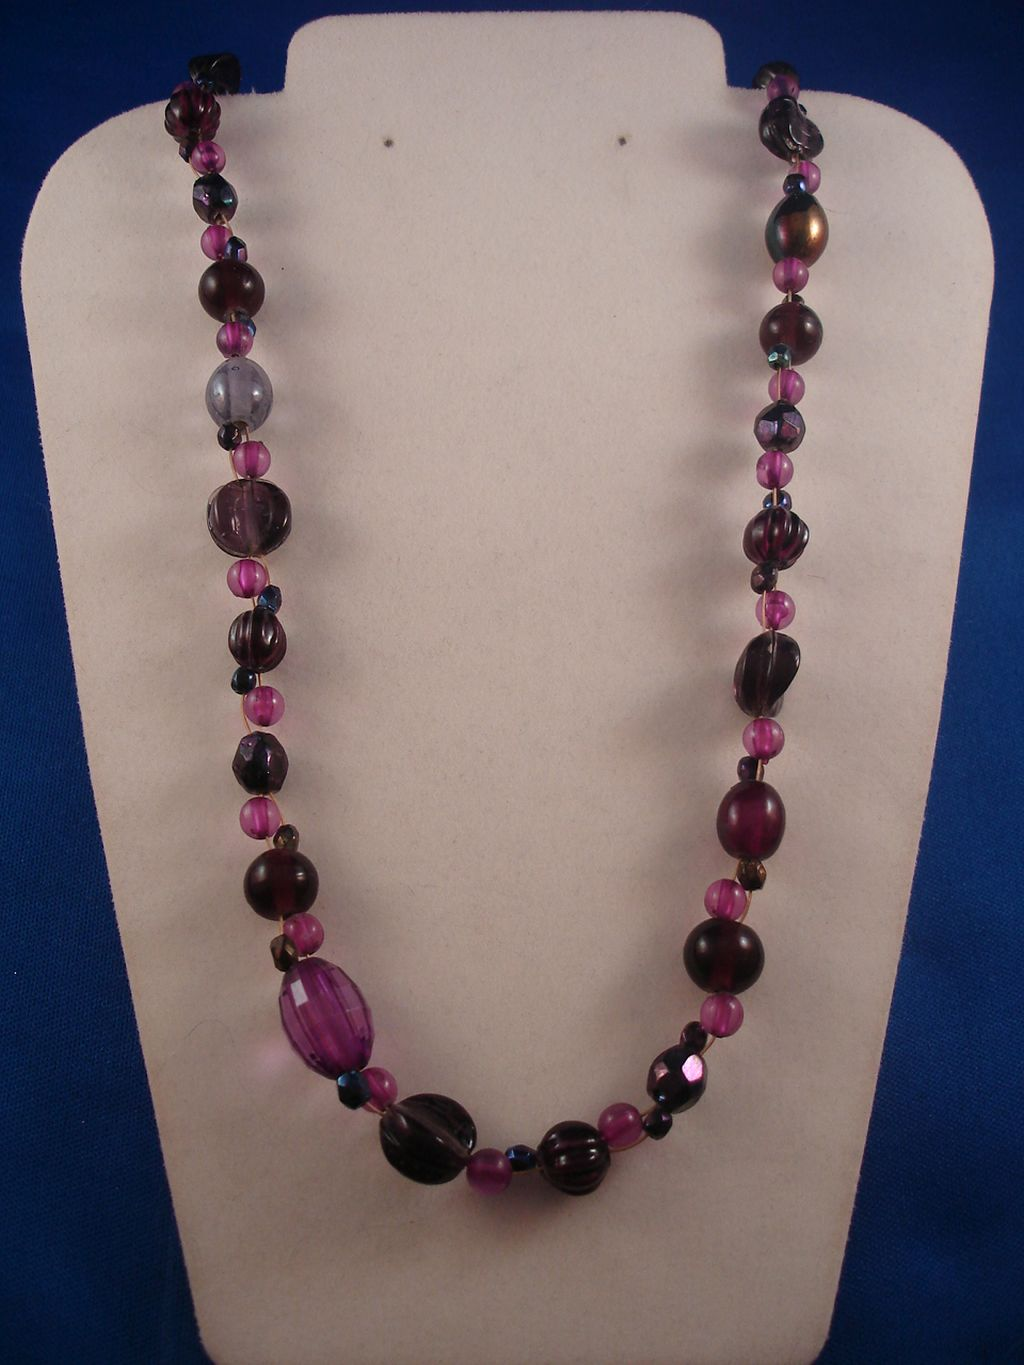 "Purple Beads 30"" Necklace, Anti-allergic Jewelry"